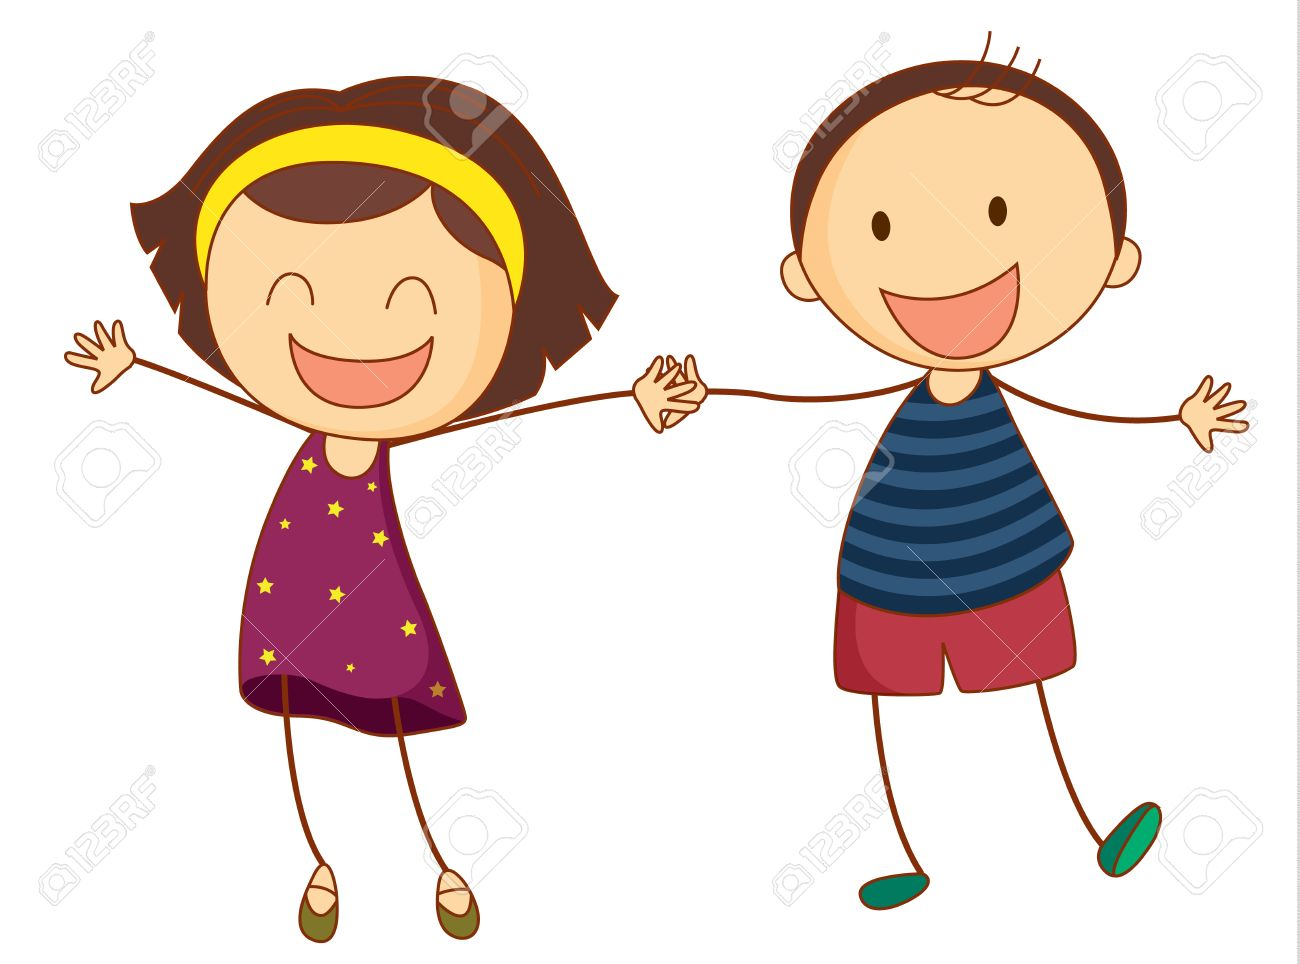 clipart of boy and girl at getdrawings com free for personal use rh getdrawings com